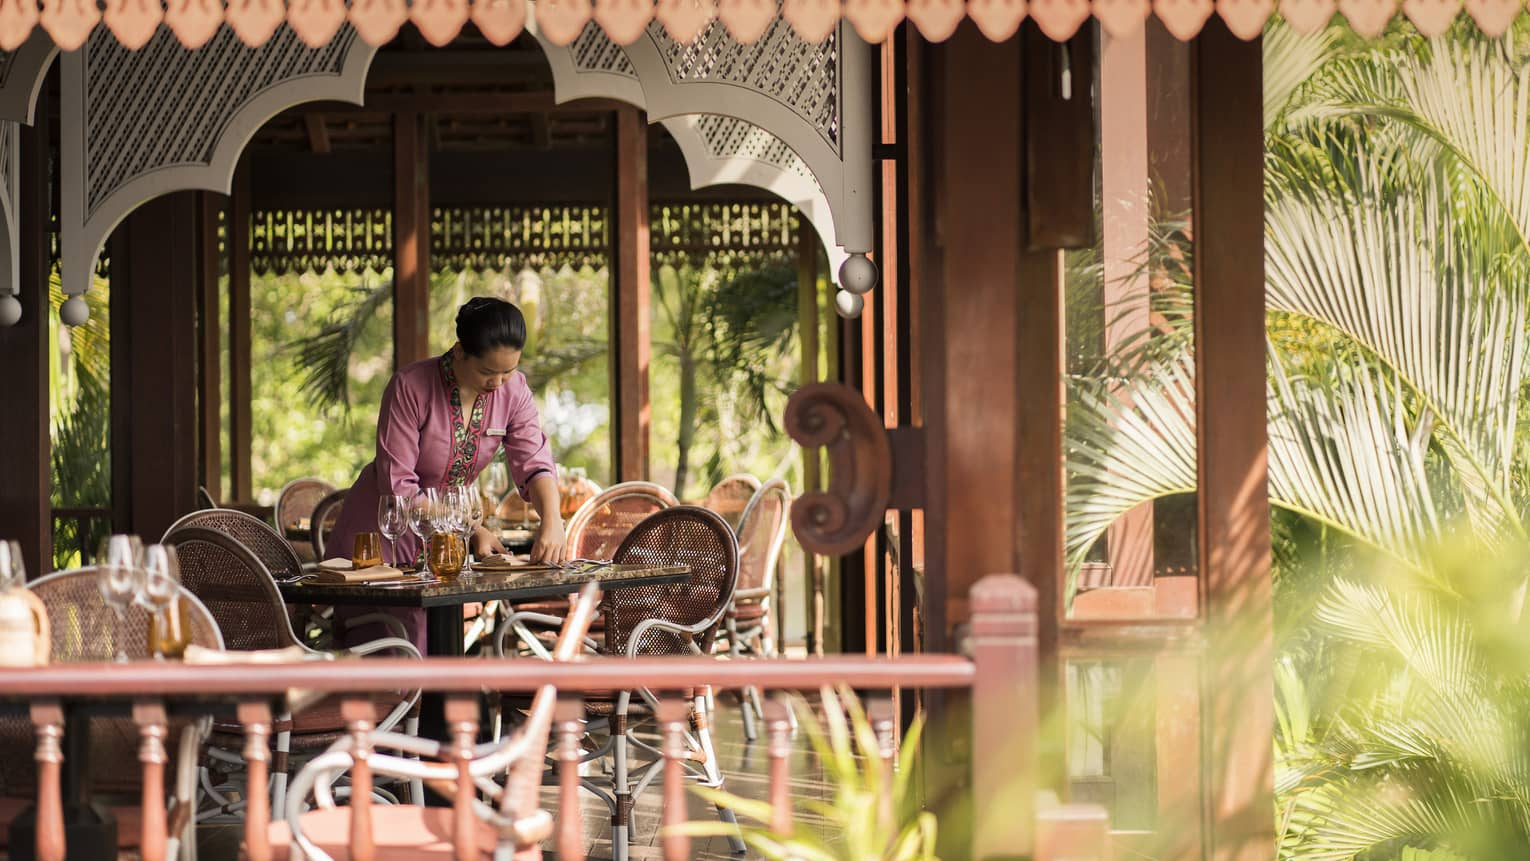 A Four Seasons staff setting the table in the open-aired Ikan Ikan at Four Seasons Langkawi